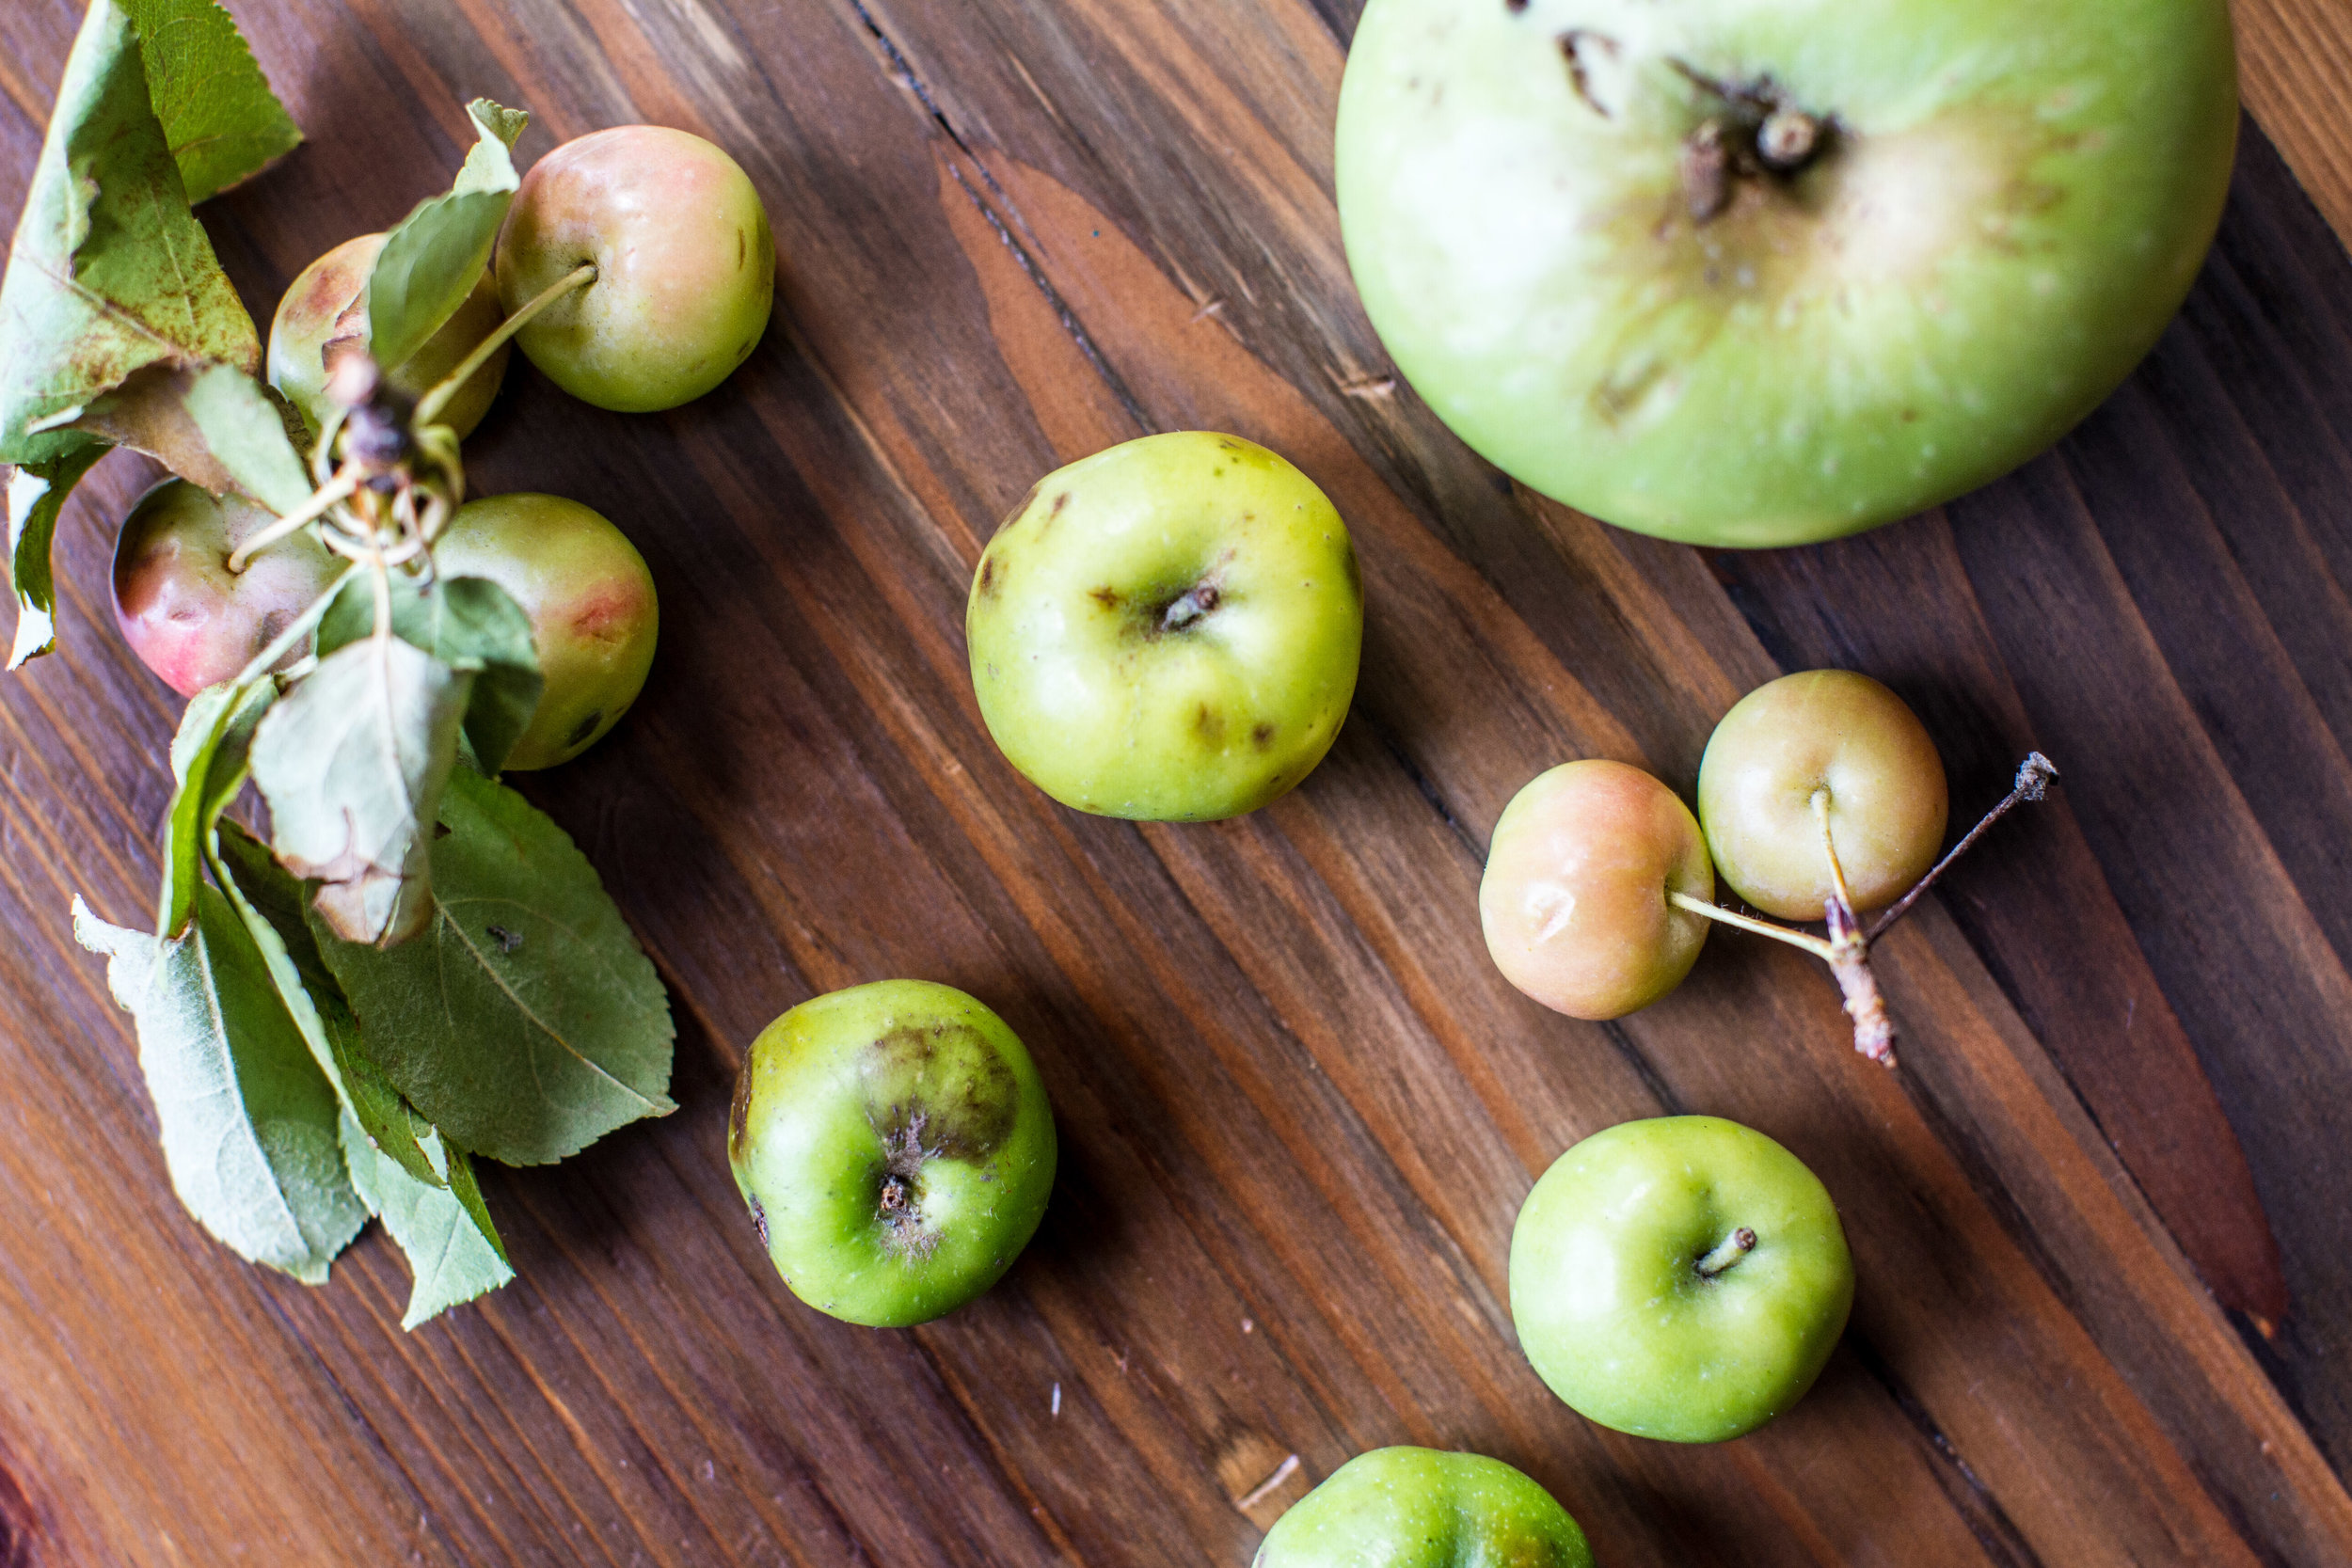 Imperfect apples destined to become ANXO cider. Photo courtesy of ANXO